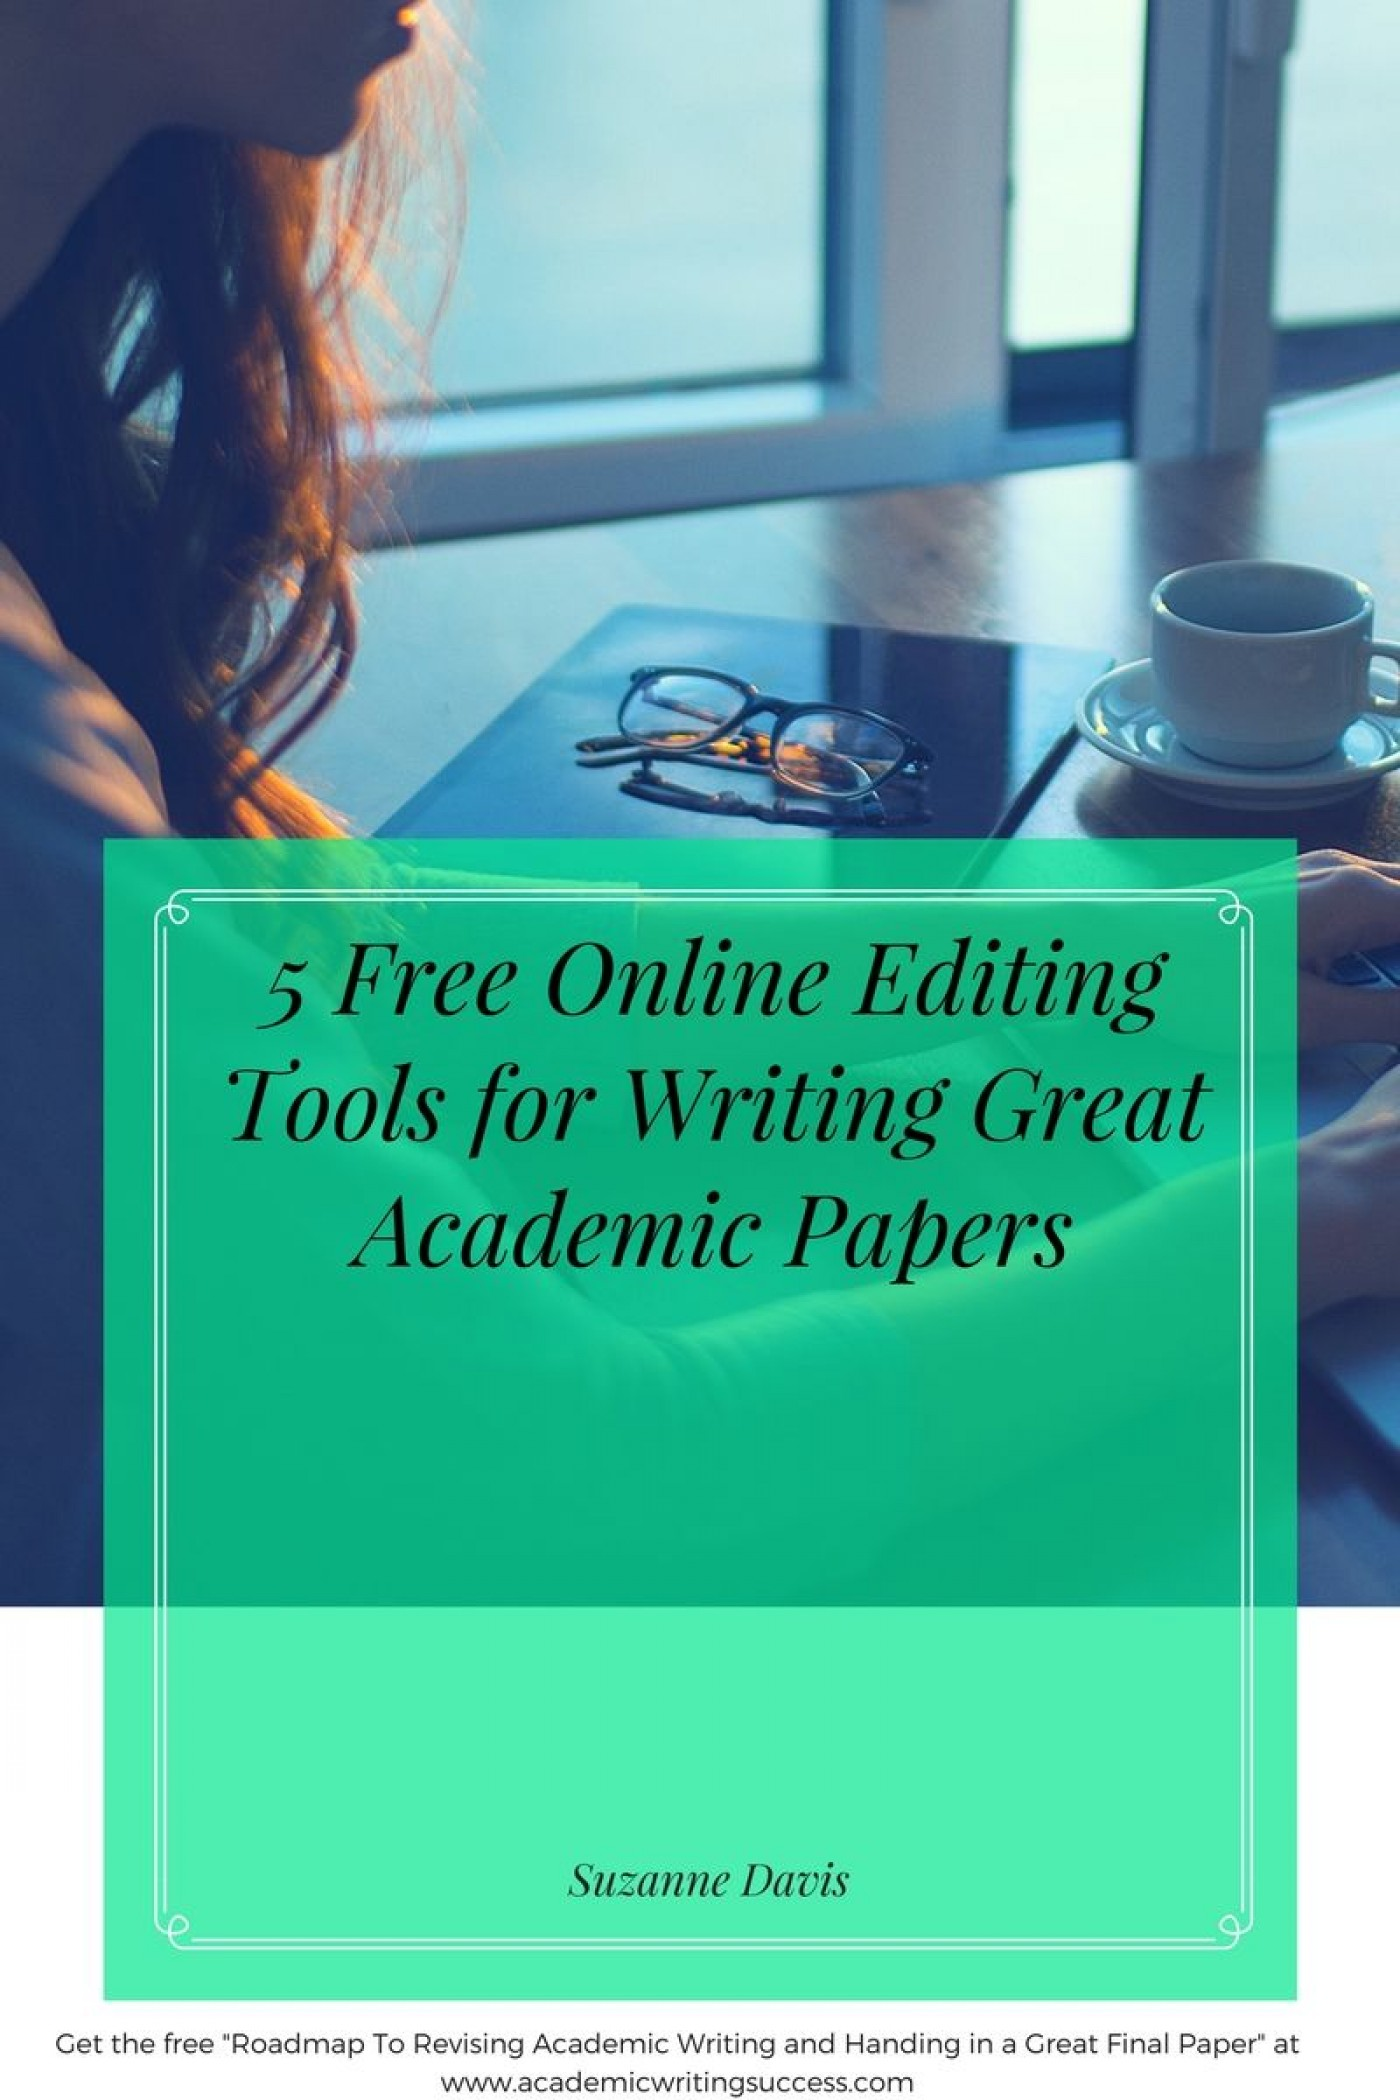 029 Research Paper Free Online Stirring Papers Submission Of Pdf Psychology 1400